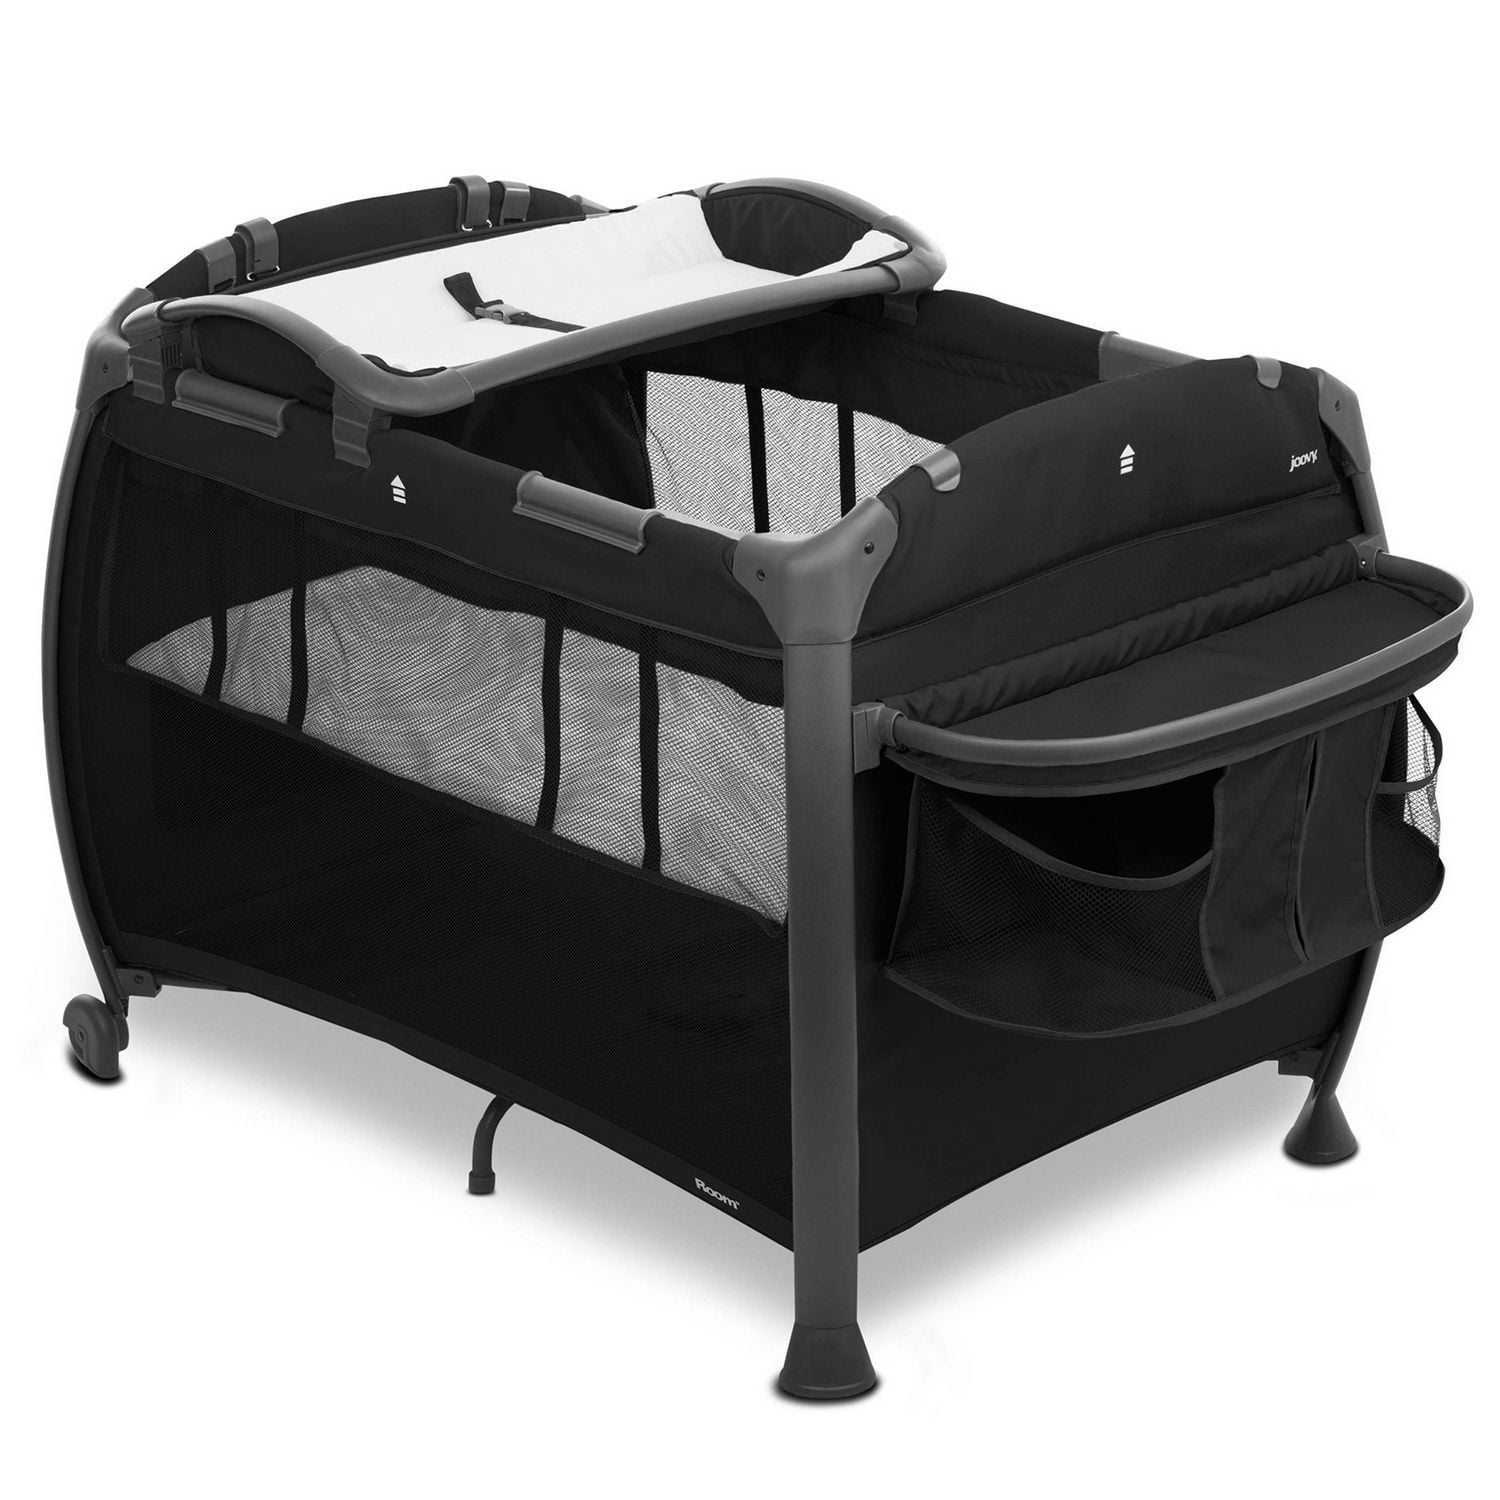 Joovy Room Play Pen and Nursery Center Black by Joovy